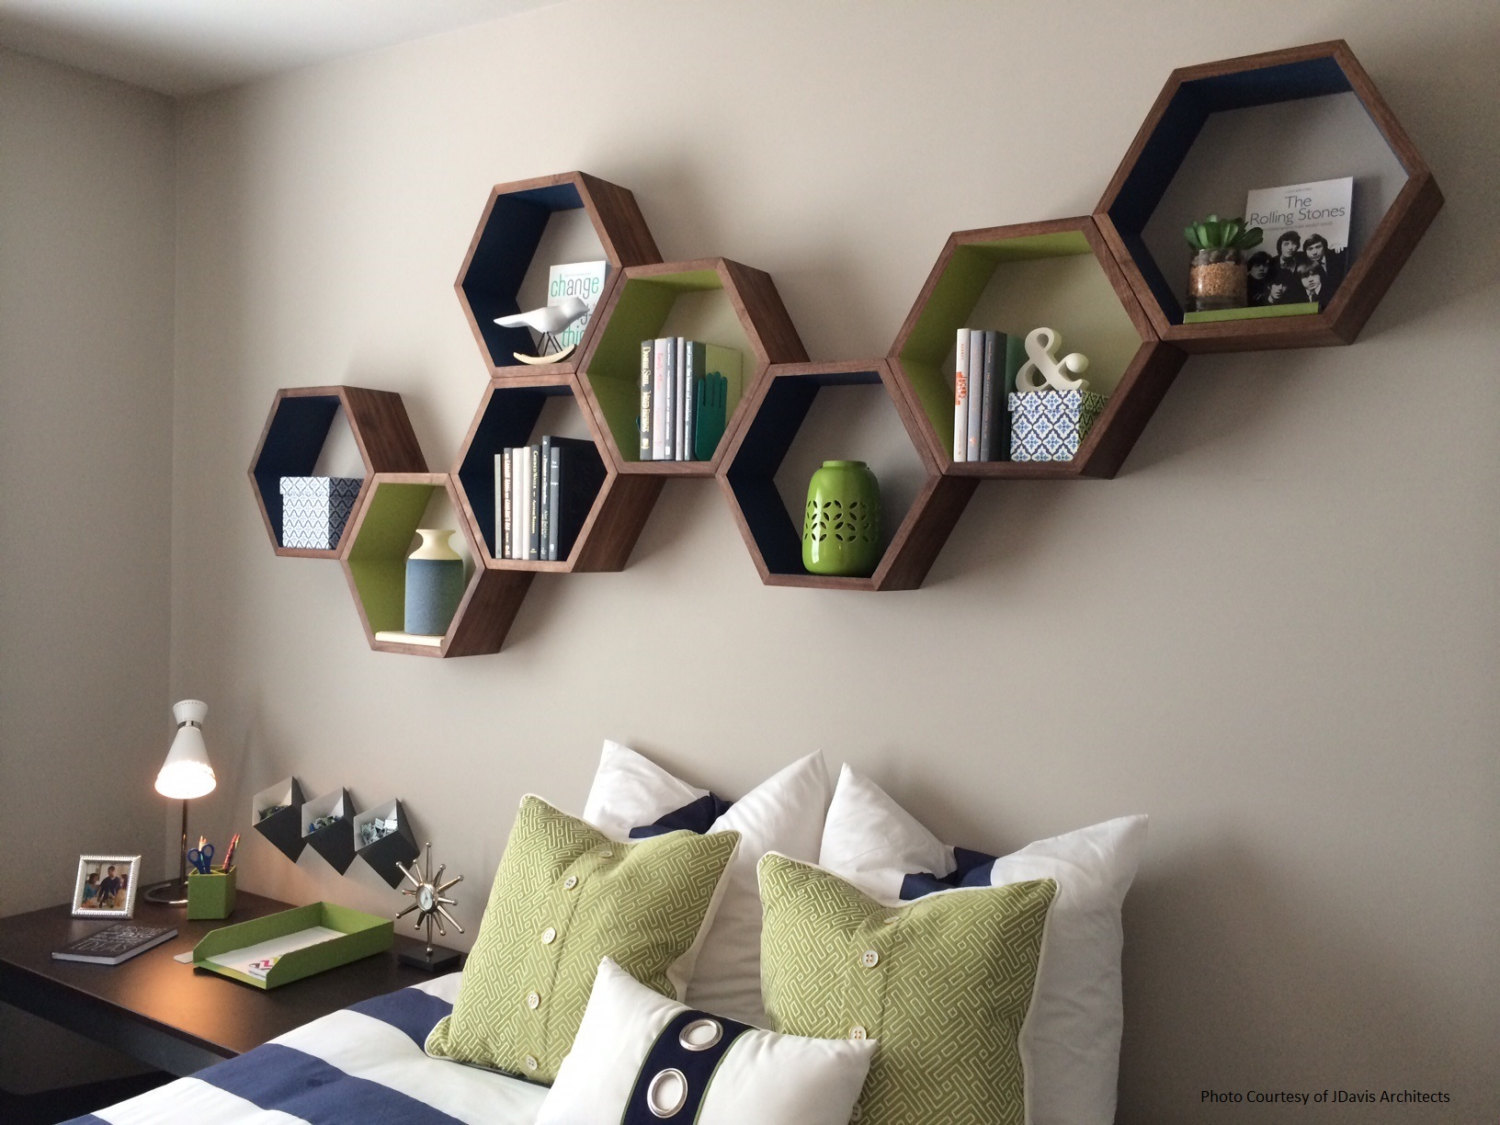 20 Creative Ways To Decorate Your Home With Unexpected ... on Creative Wall Art Ideas  id=26037